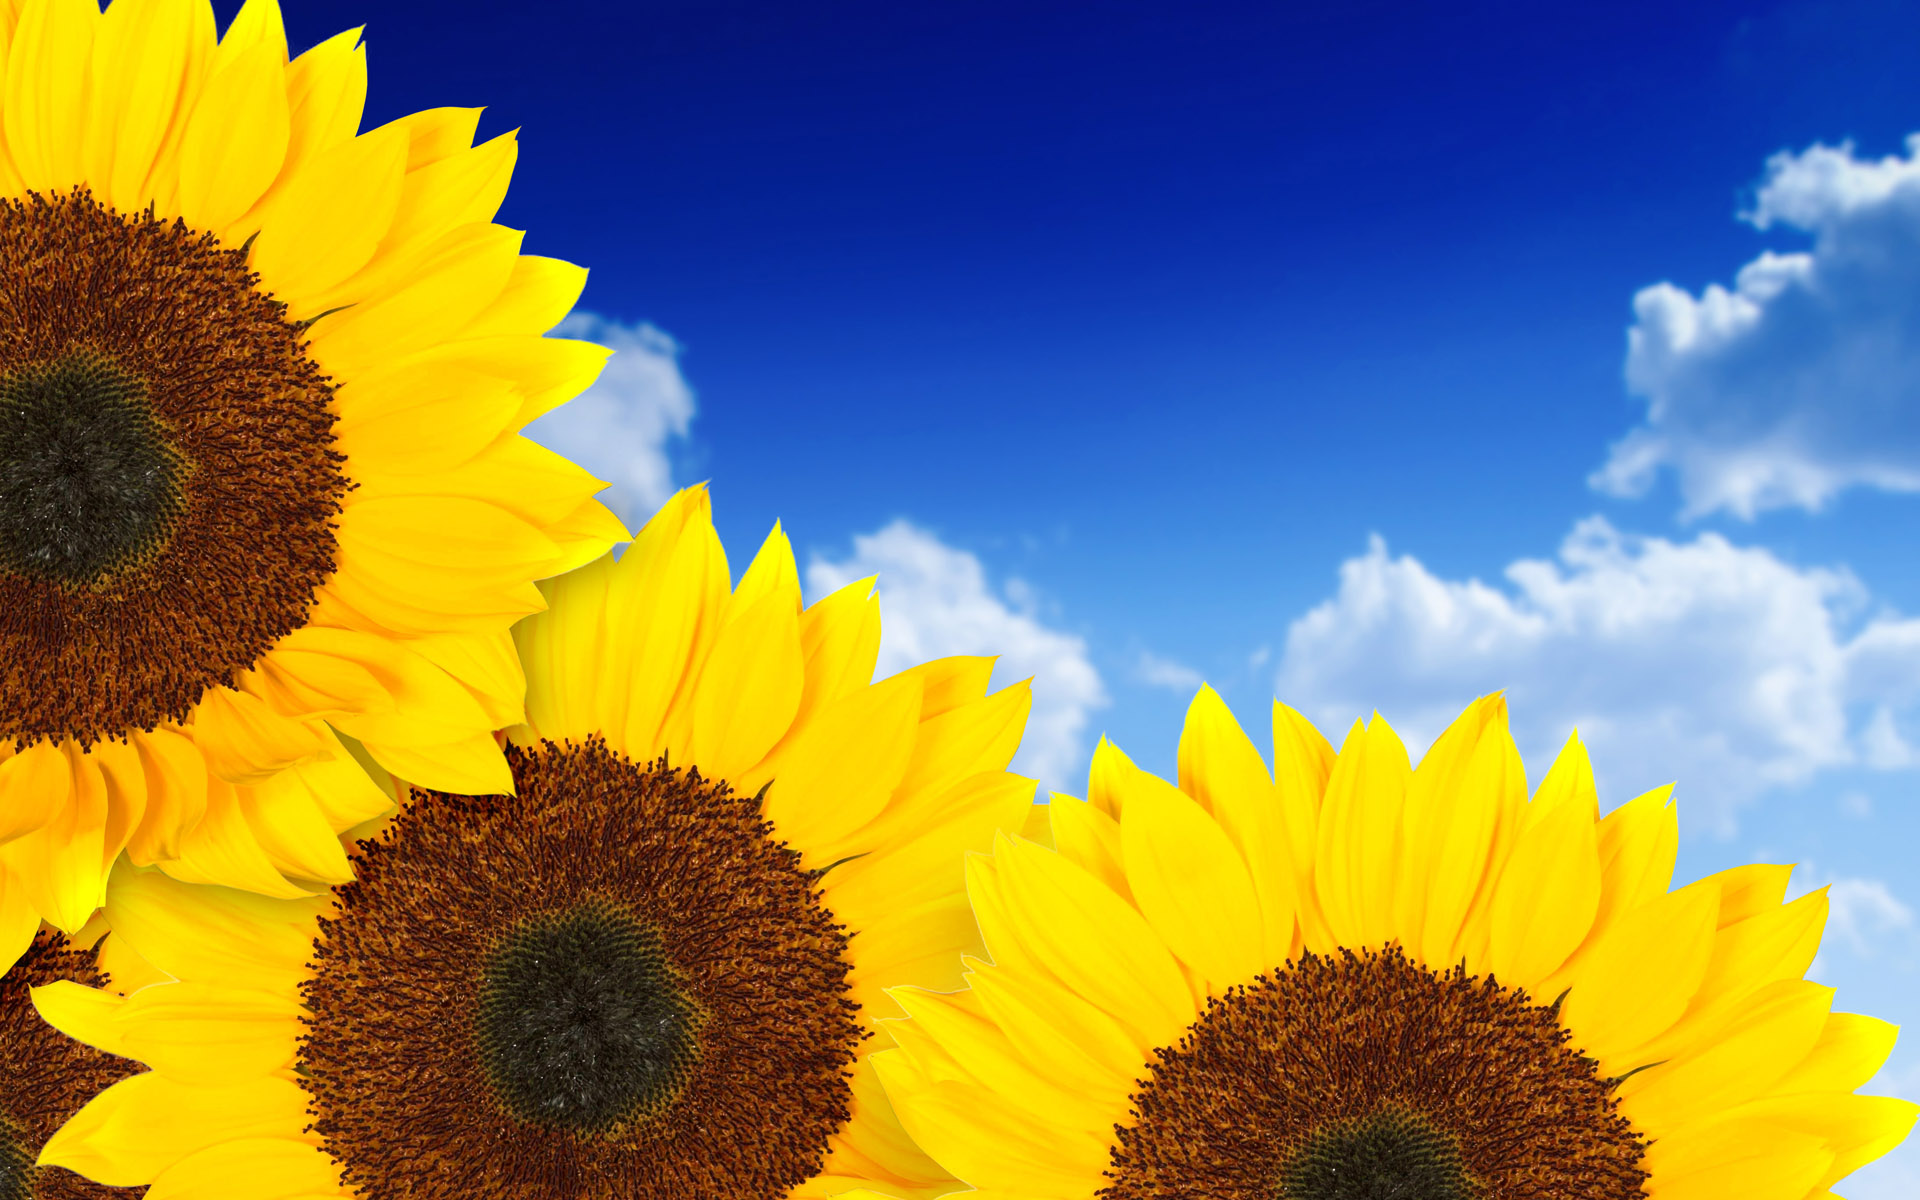 Pure Yellow Sunflowers 4178510 1920x1200 All For Desktop